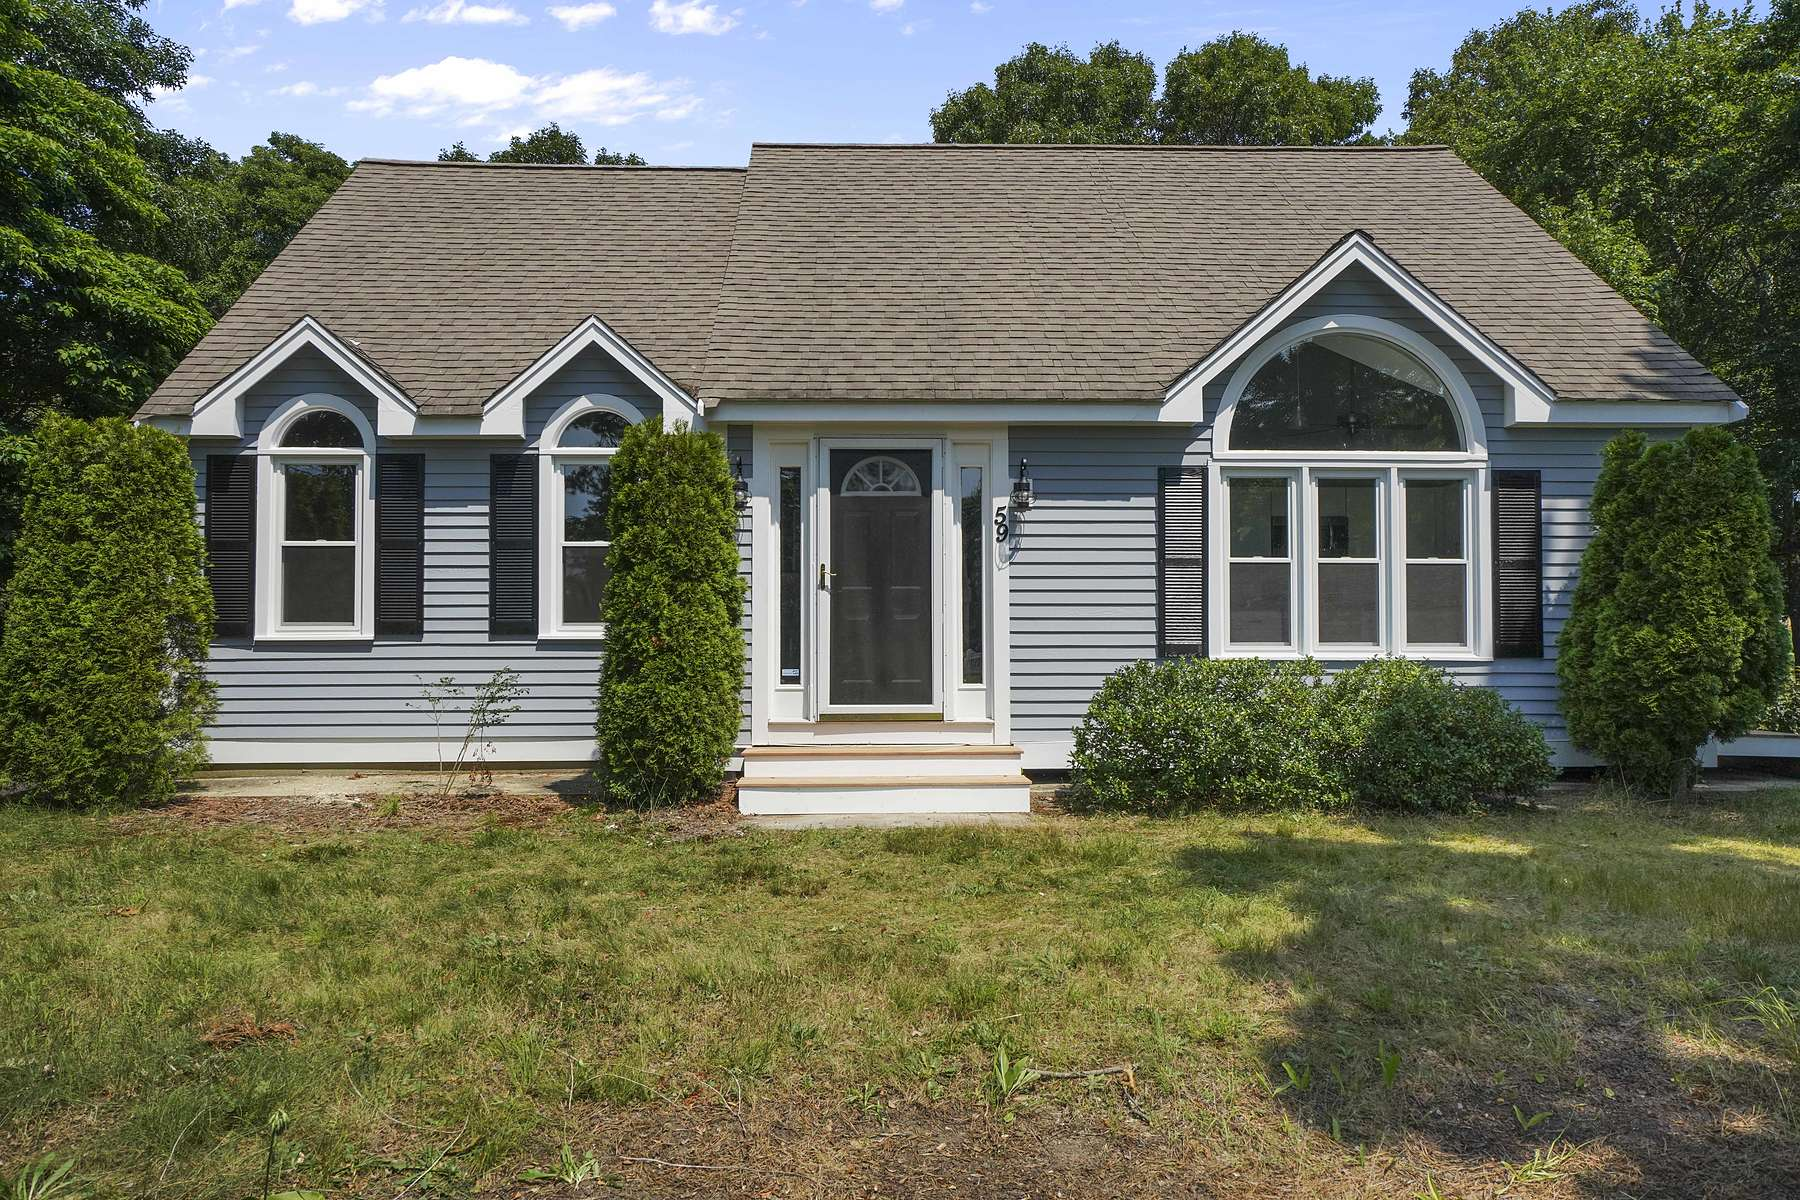 Single Family Homes for Sale at 59 Nonantum Road, Plymouth 59 Nonantum Road Plymouth, Massachusetts 02360 United States